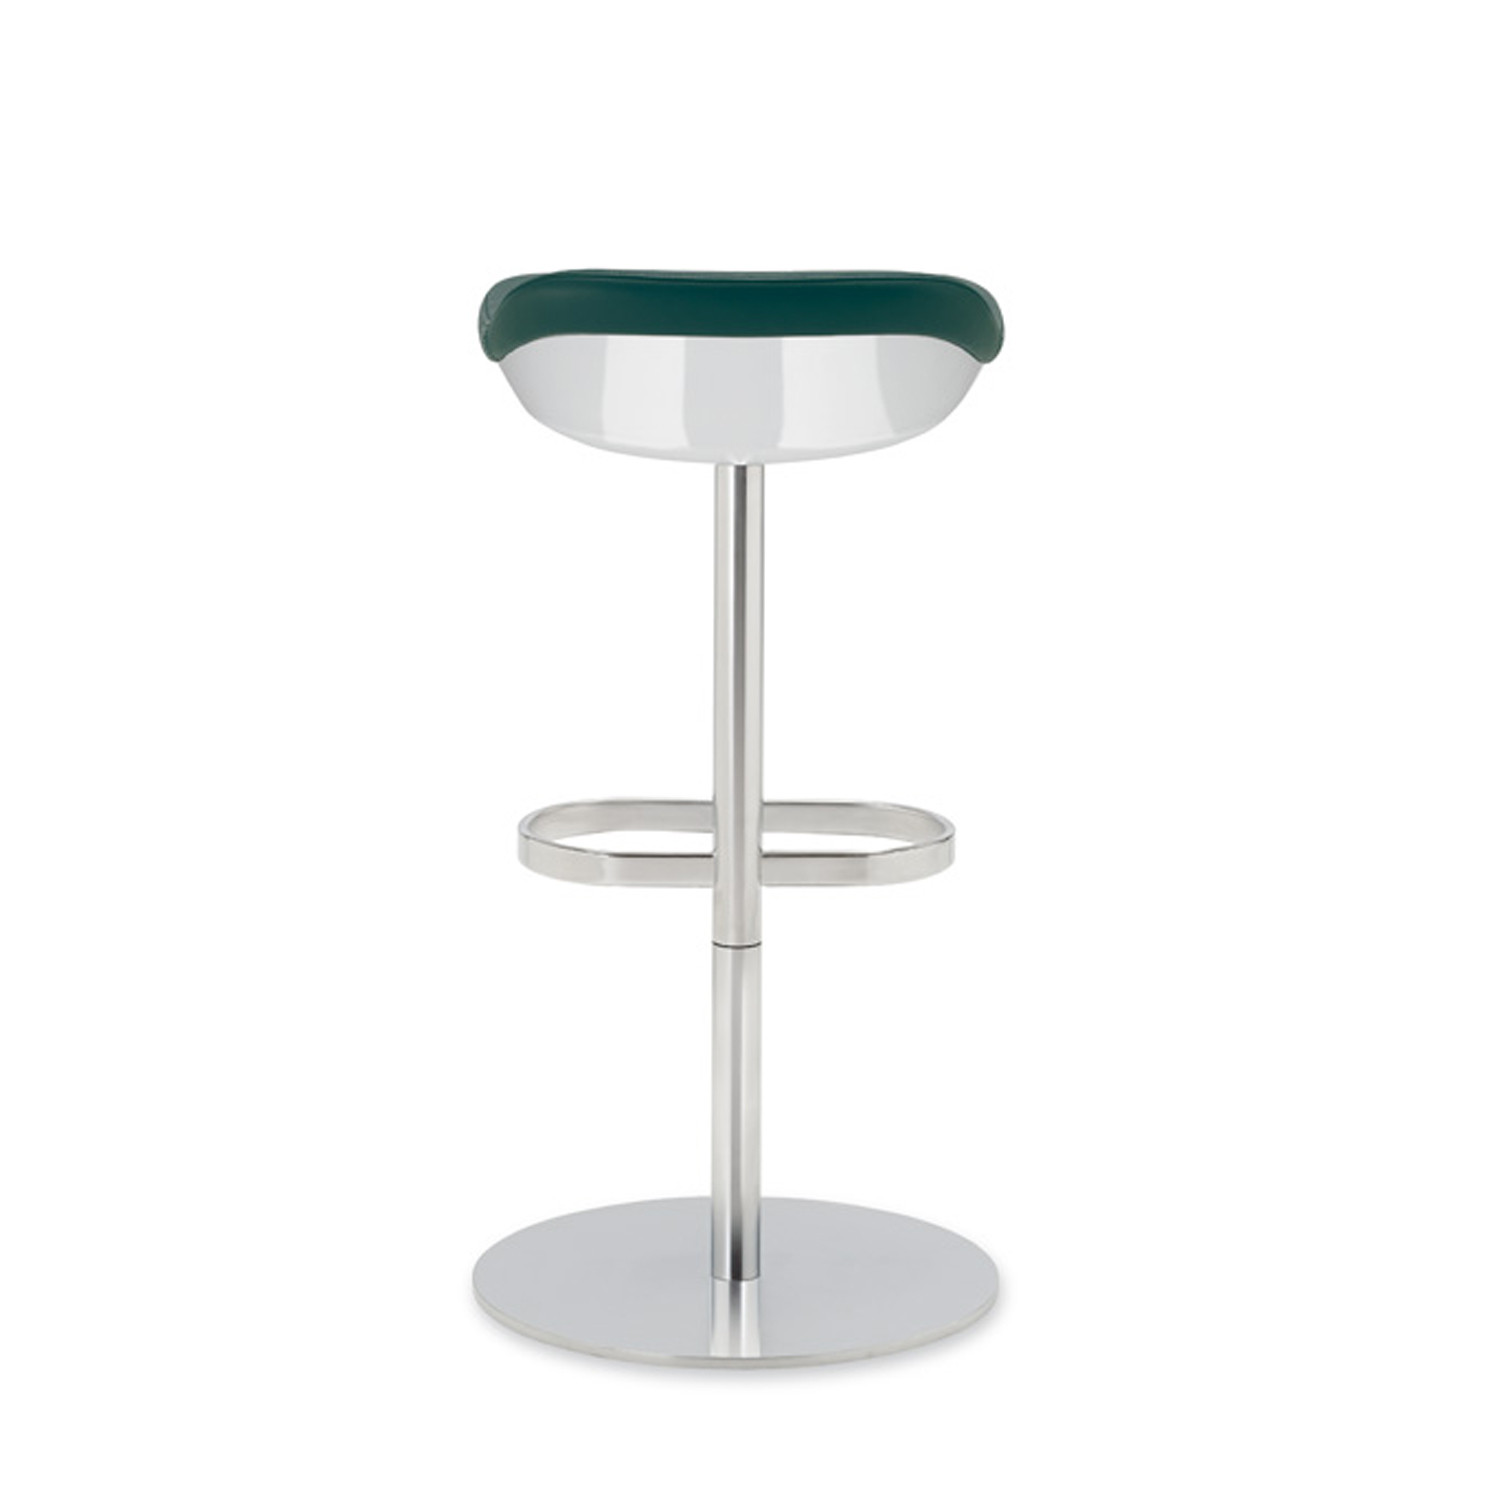 Turtle Bar Stool Designer Barstools Apres Furniture : turtle bar stool 06 from www.apresfurniture.co.uk size 1500 x 1500 jpeg 60kB